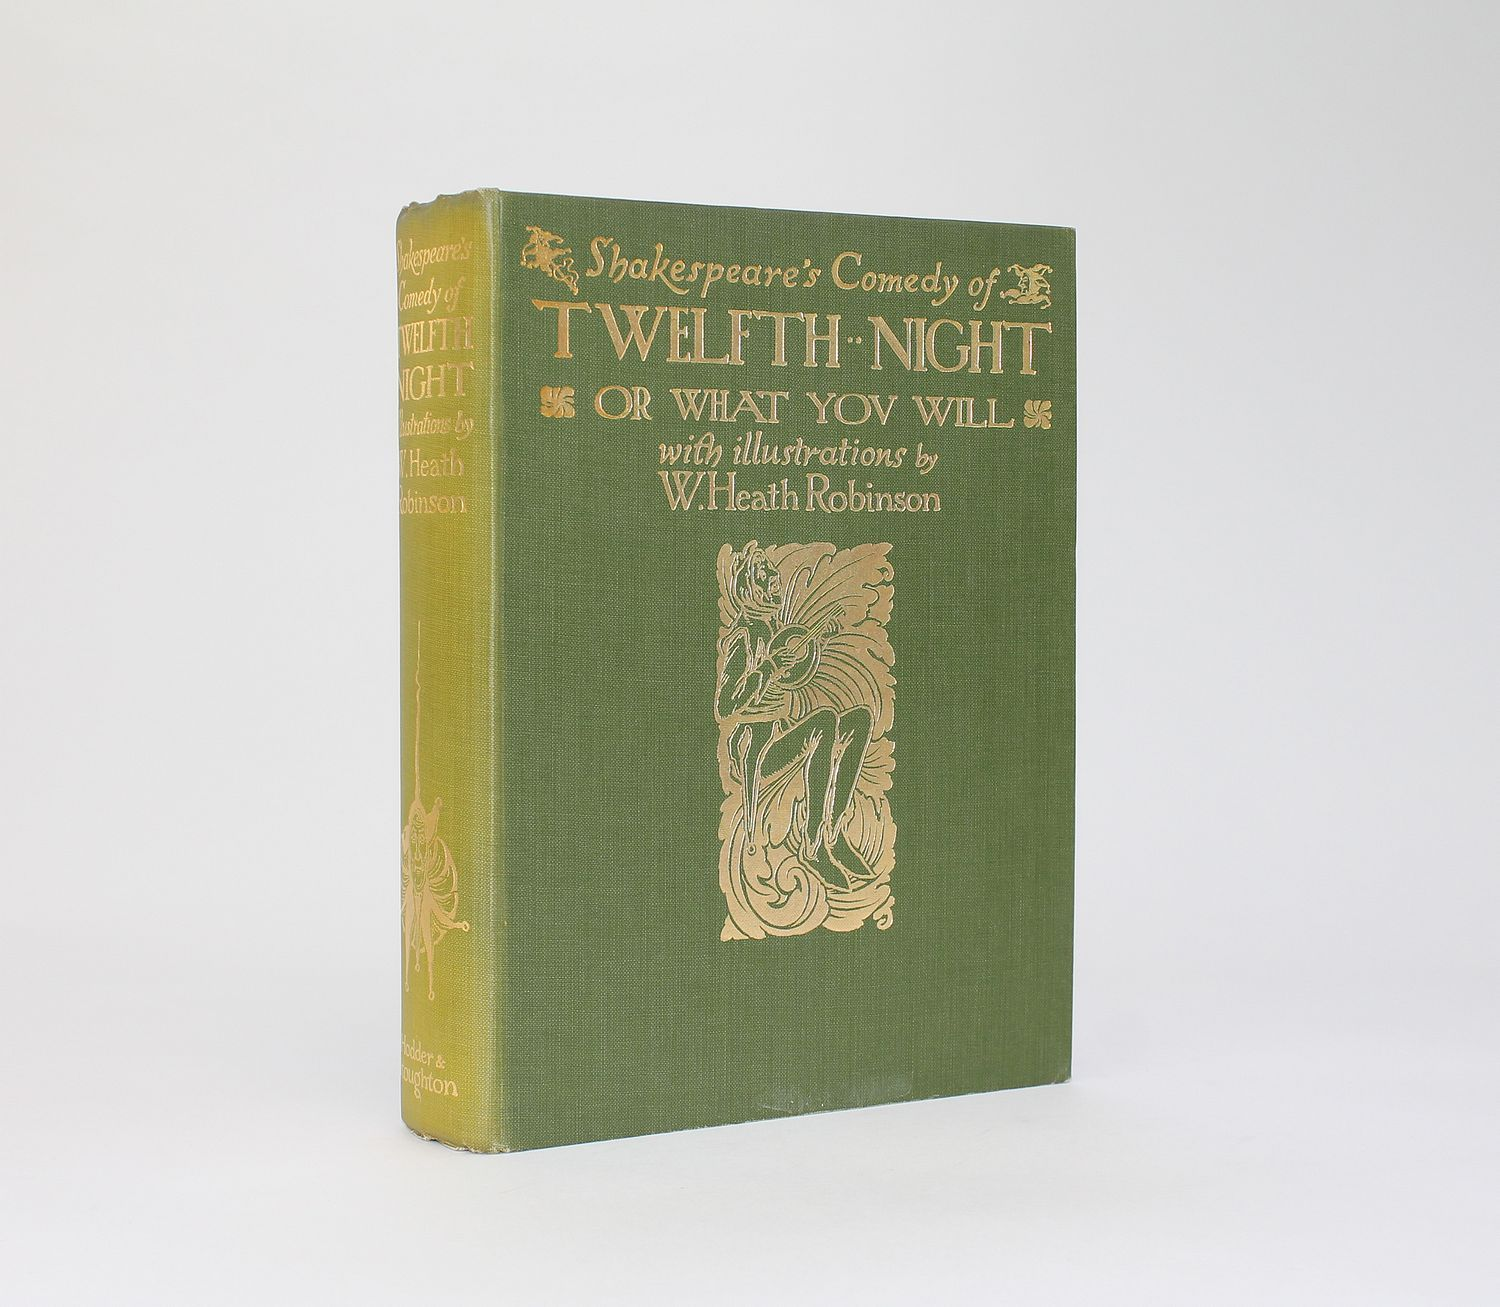 Comedy and seriousness in twelfth night